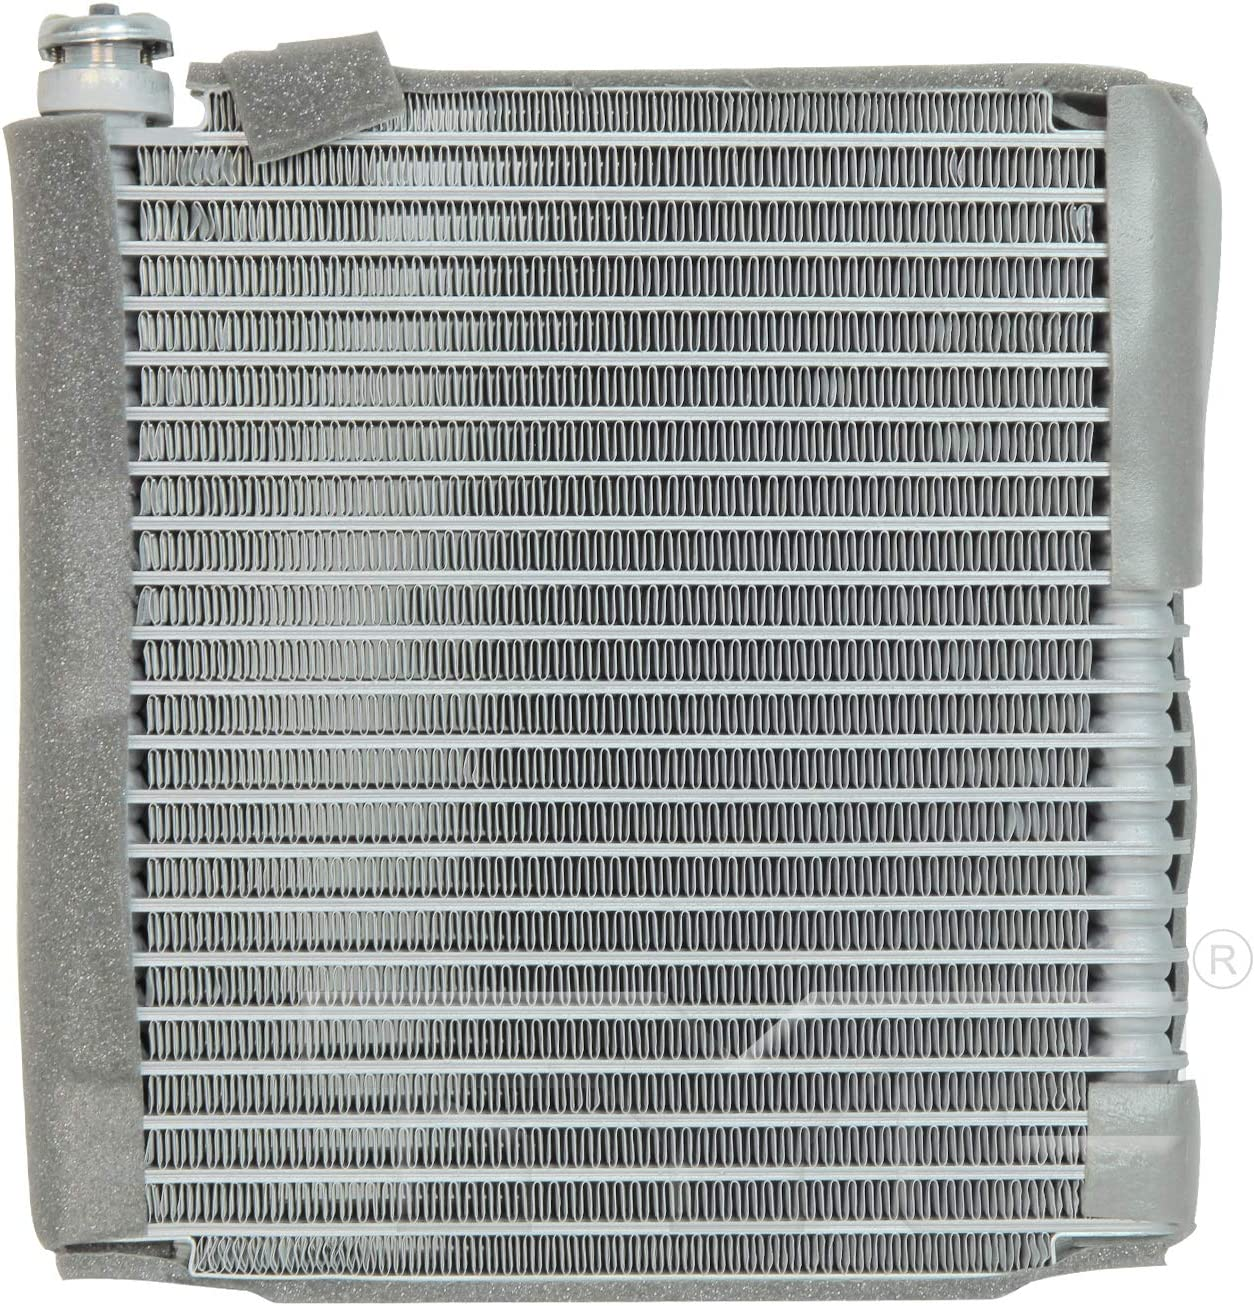 A//C Evaporator Core Compatible With Mazda 3 5 2004 2005 2006 2007 2008 2009 2010 2011 2012 2013 2014 2015 2016 2017 Front